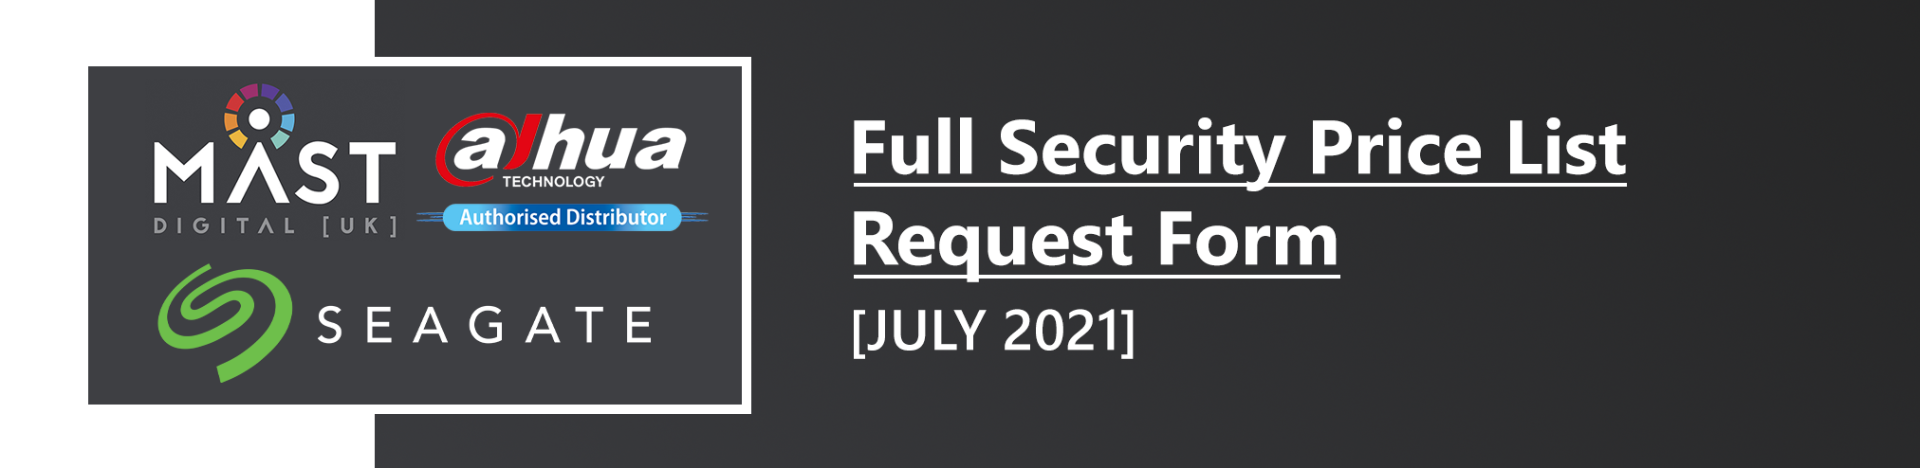 Mast Digital - Full Security Price List Request Form - July 2021